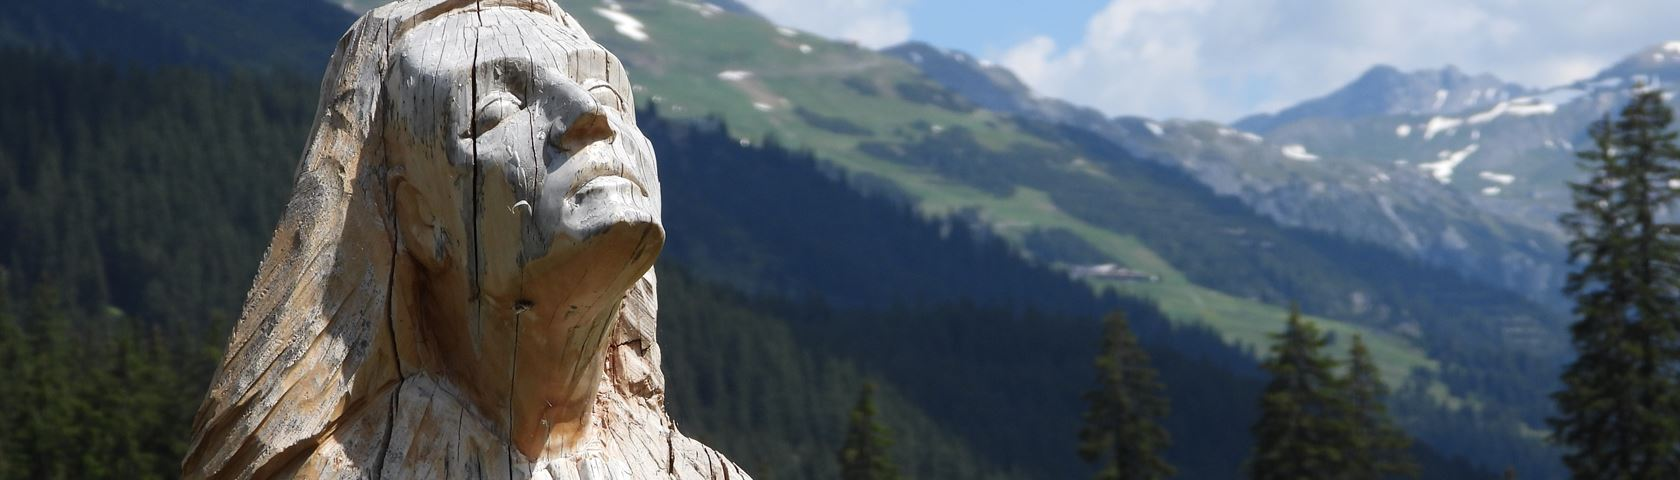 Statue on a Mountain